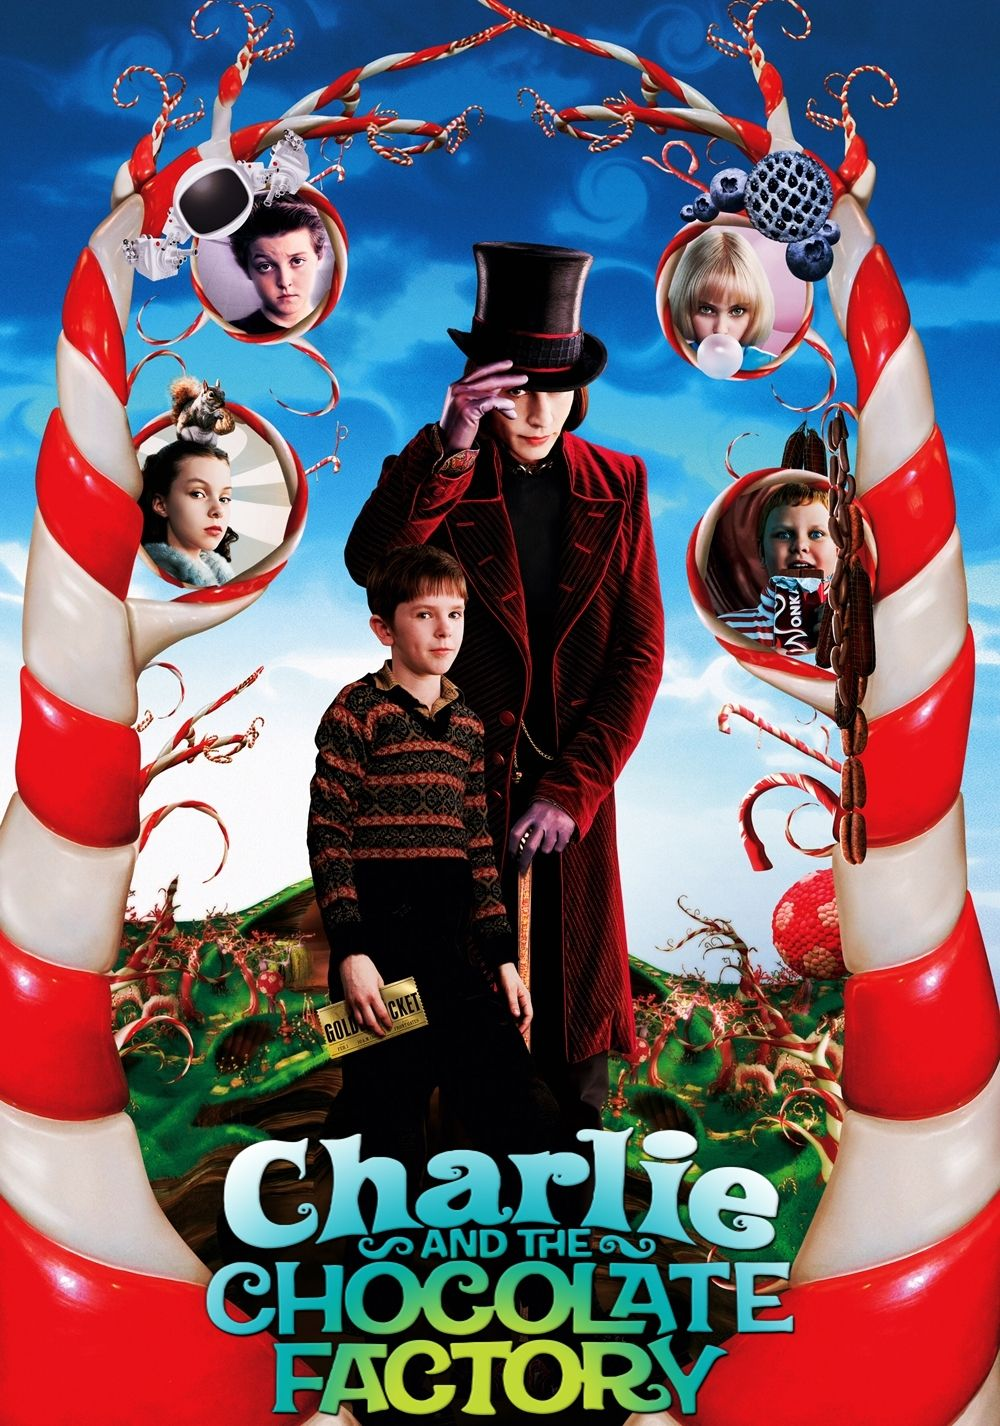 20 Interesting Facts About The Movie Charlie And The Chocolate